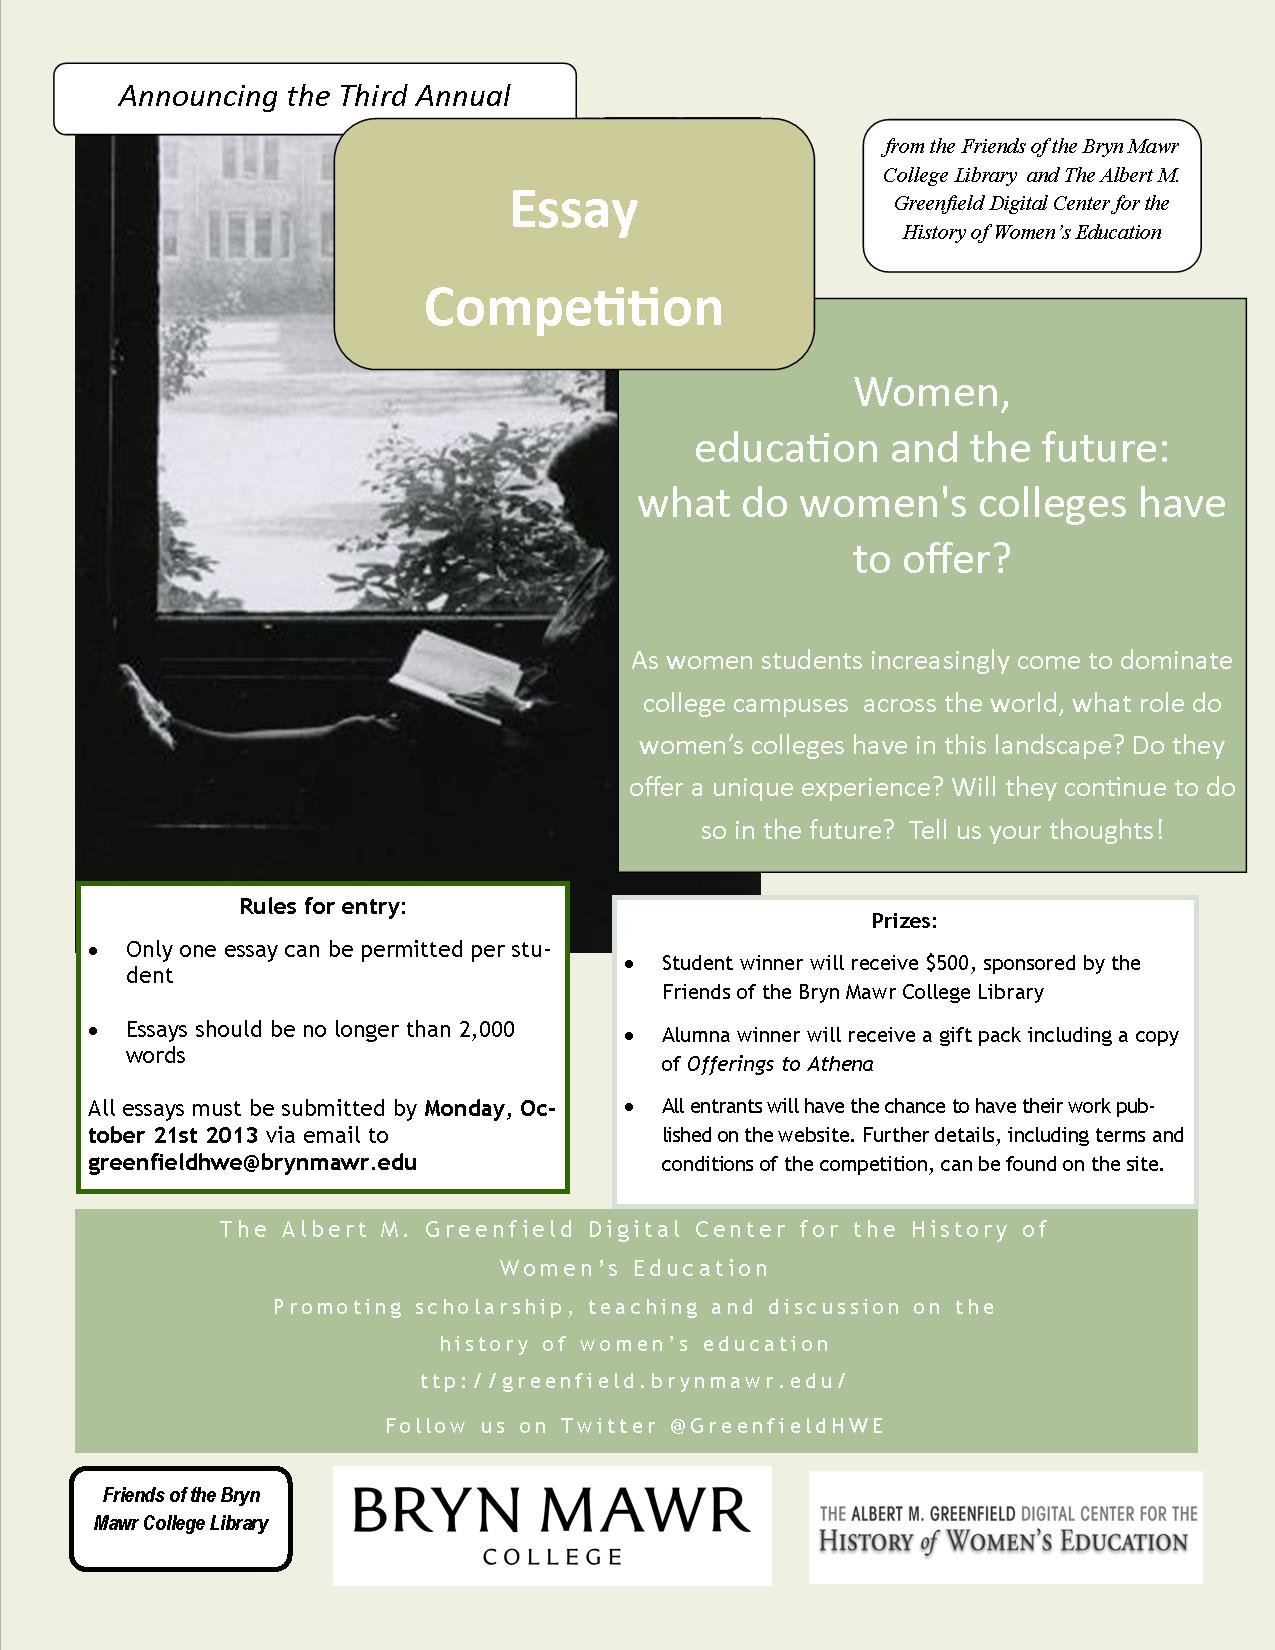 friends of the library educating women essay competition poster 2013